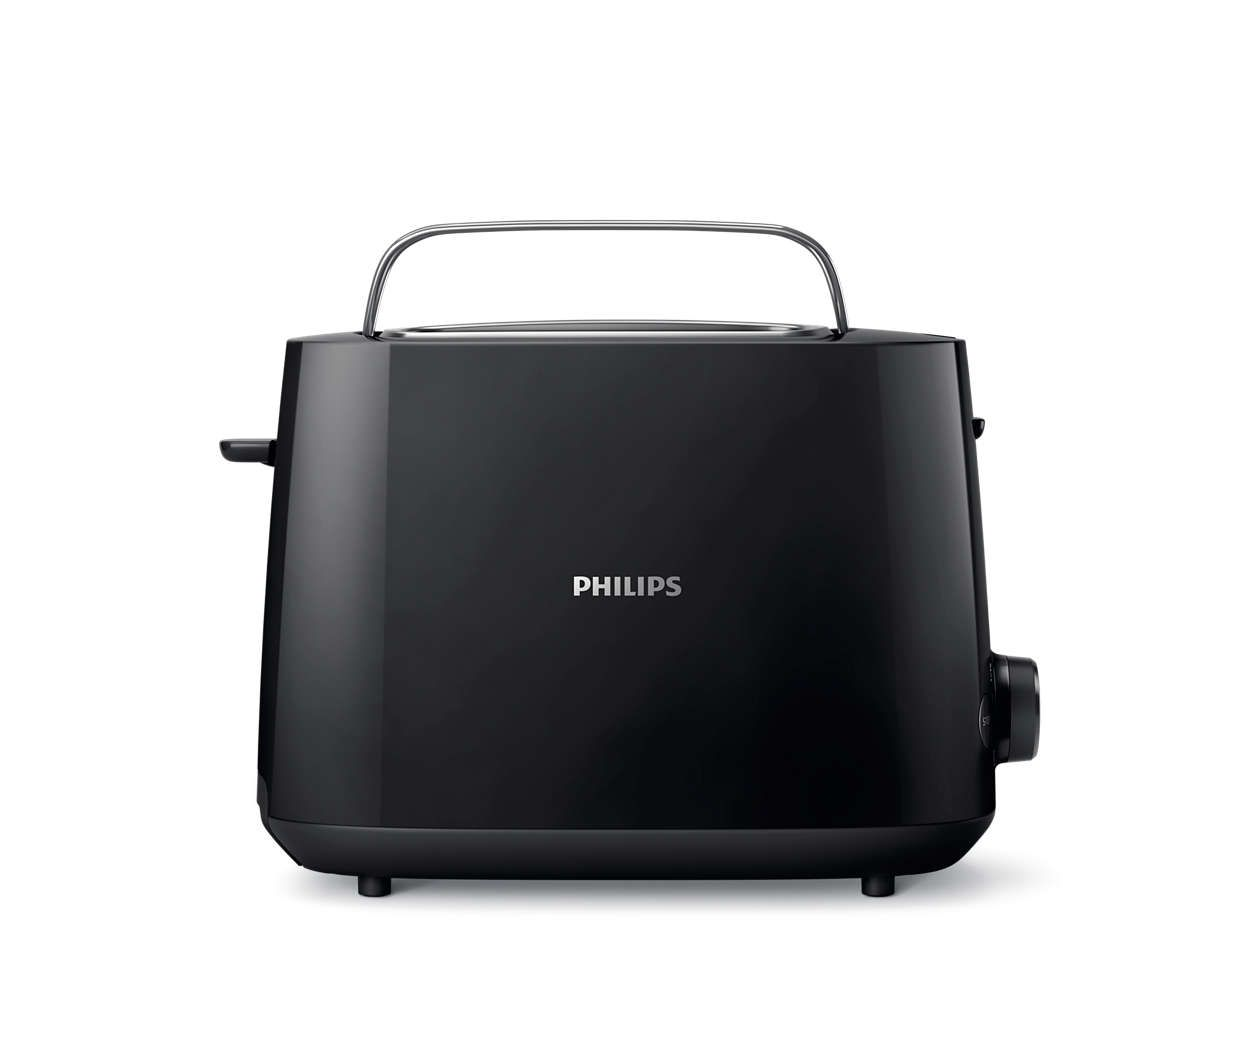 тостер philips hd2581 00 купить